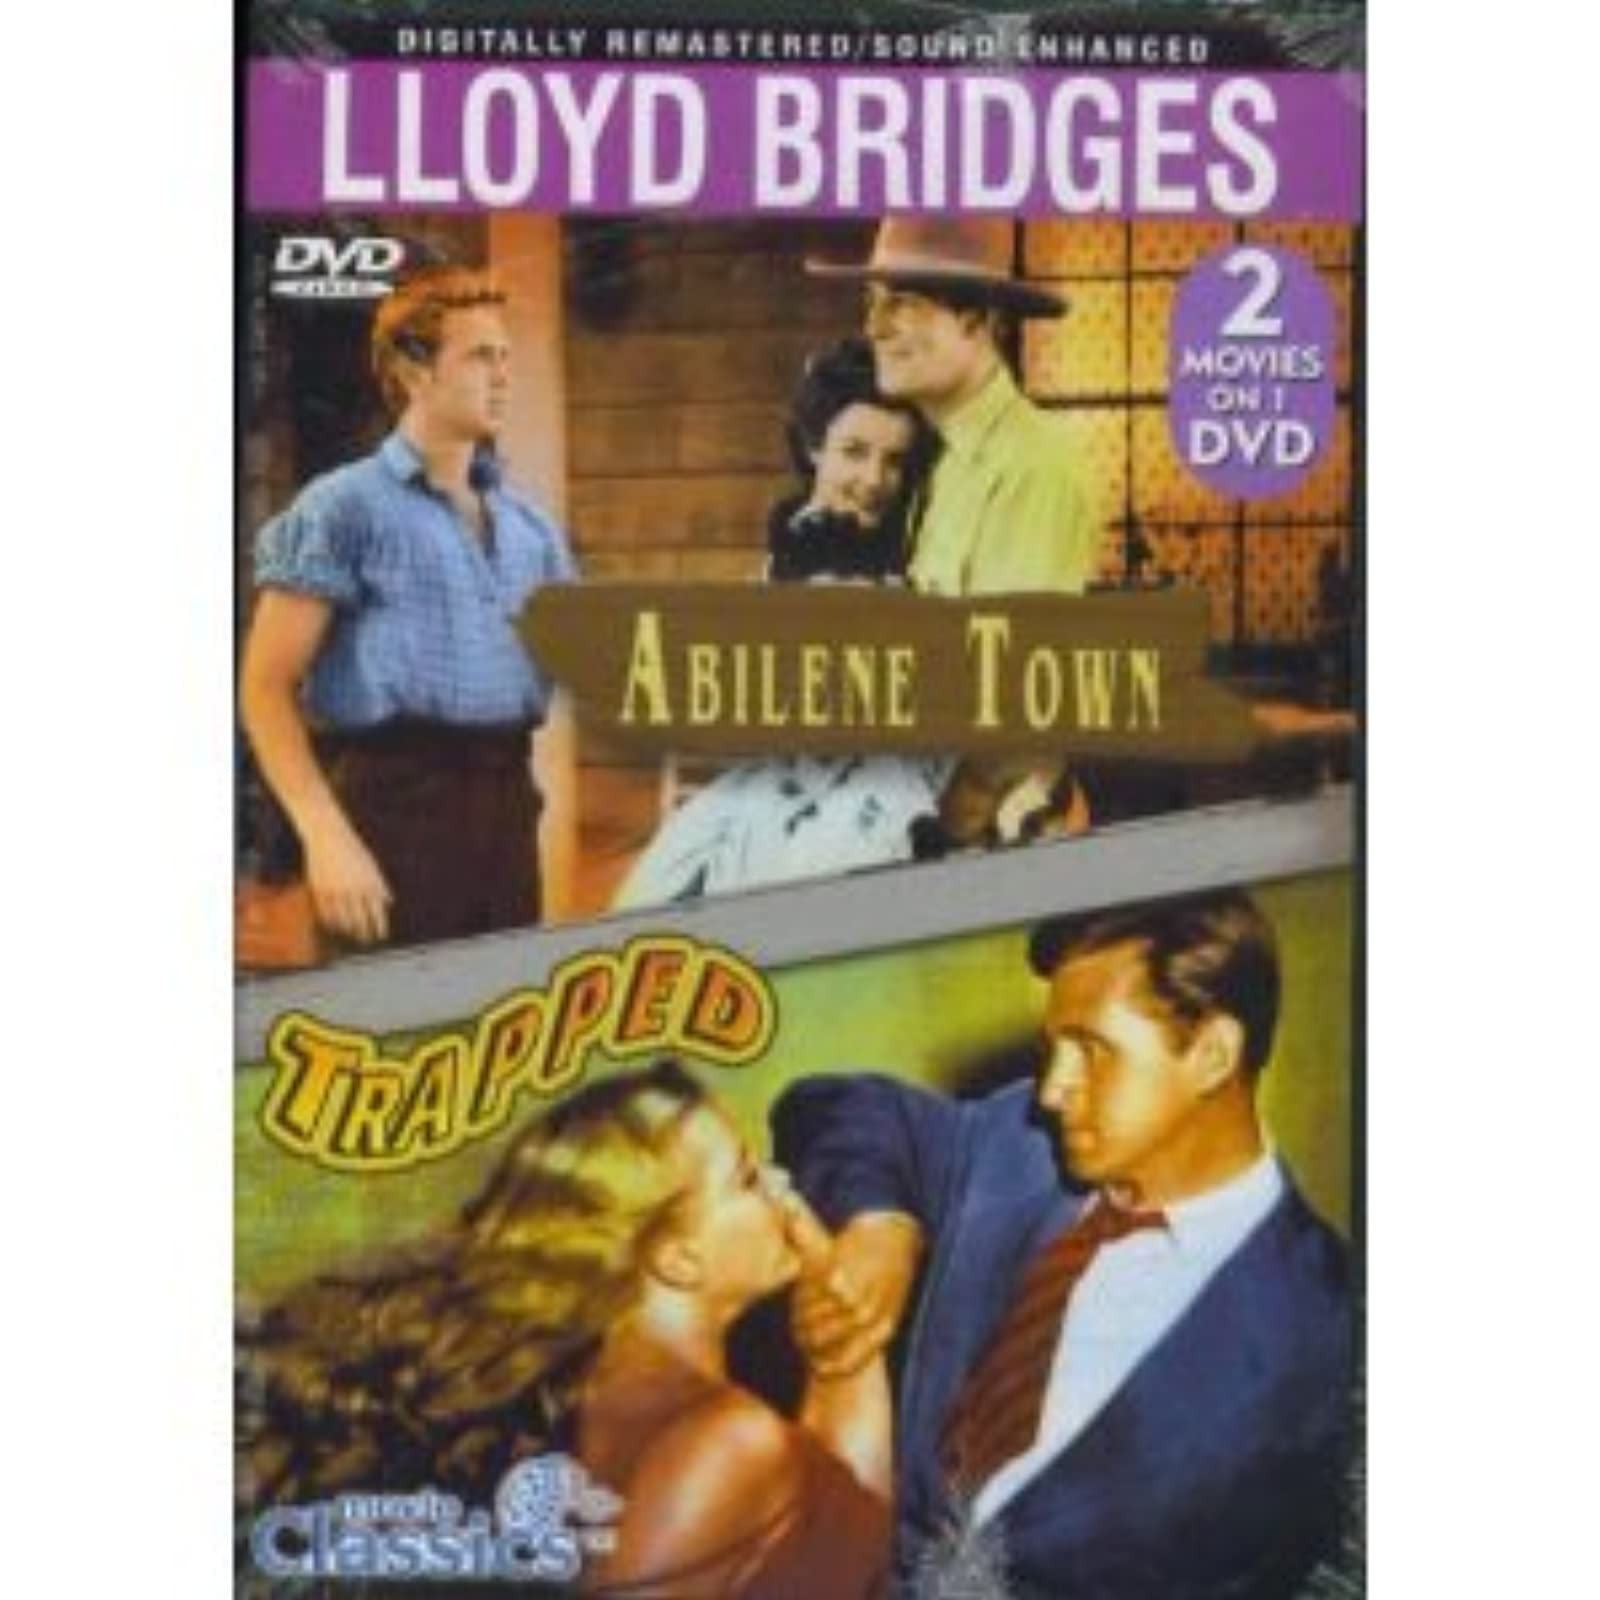 Abilene Town / Trapped Double Feature On DVD With Lloyd Bridges